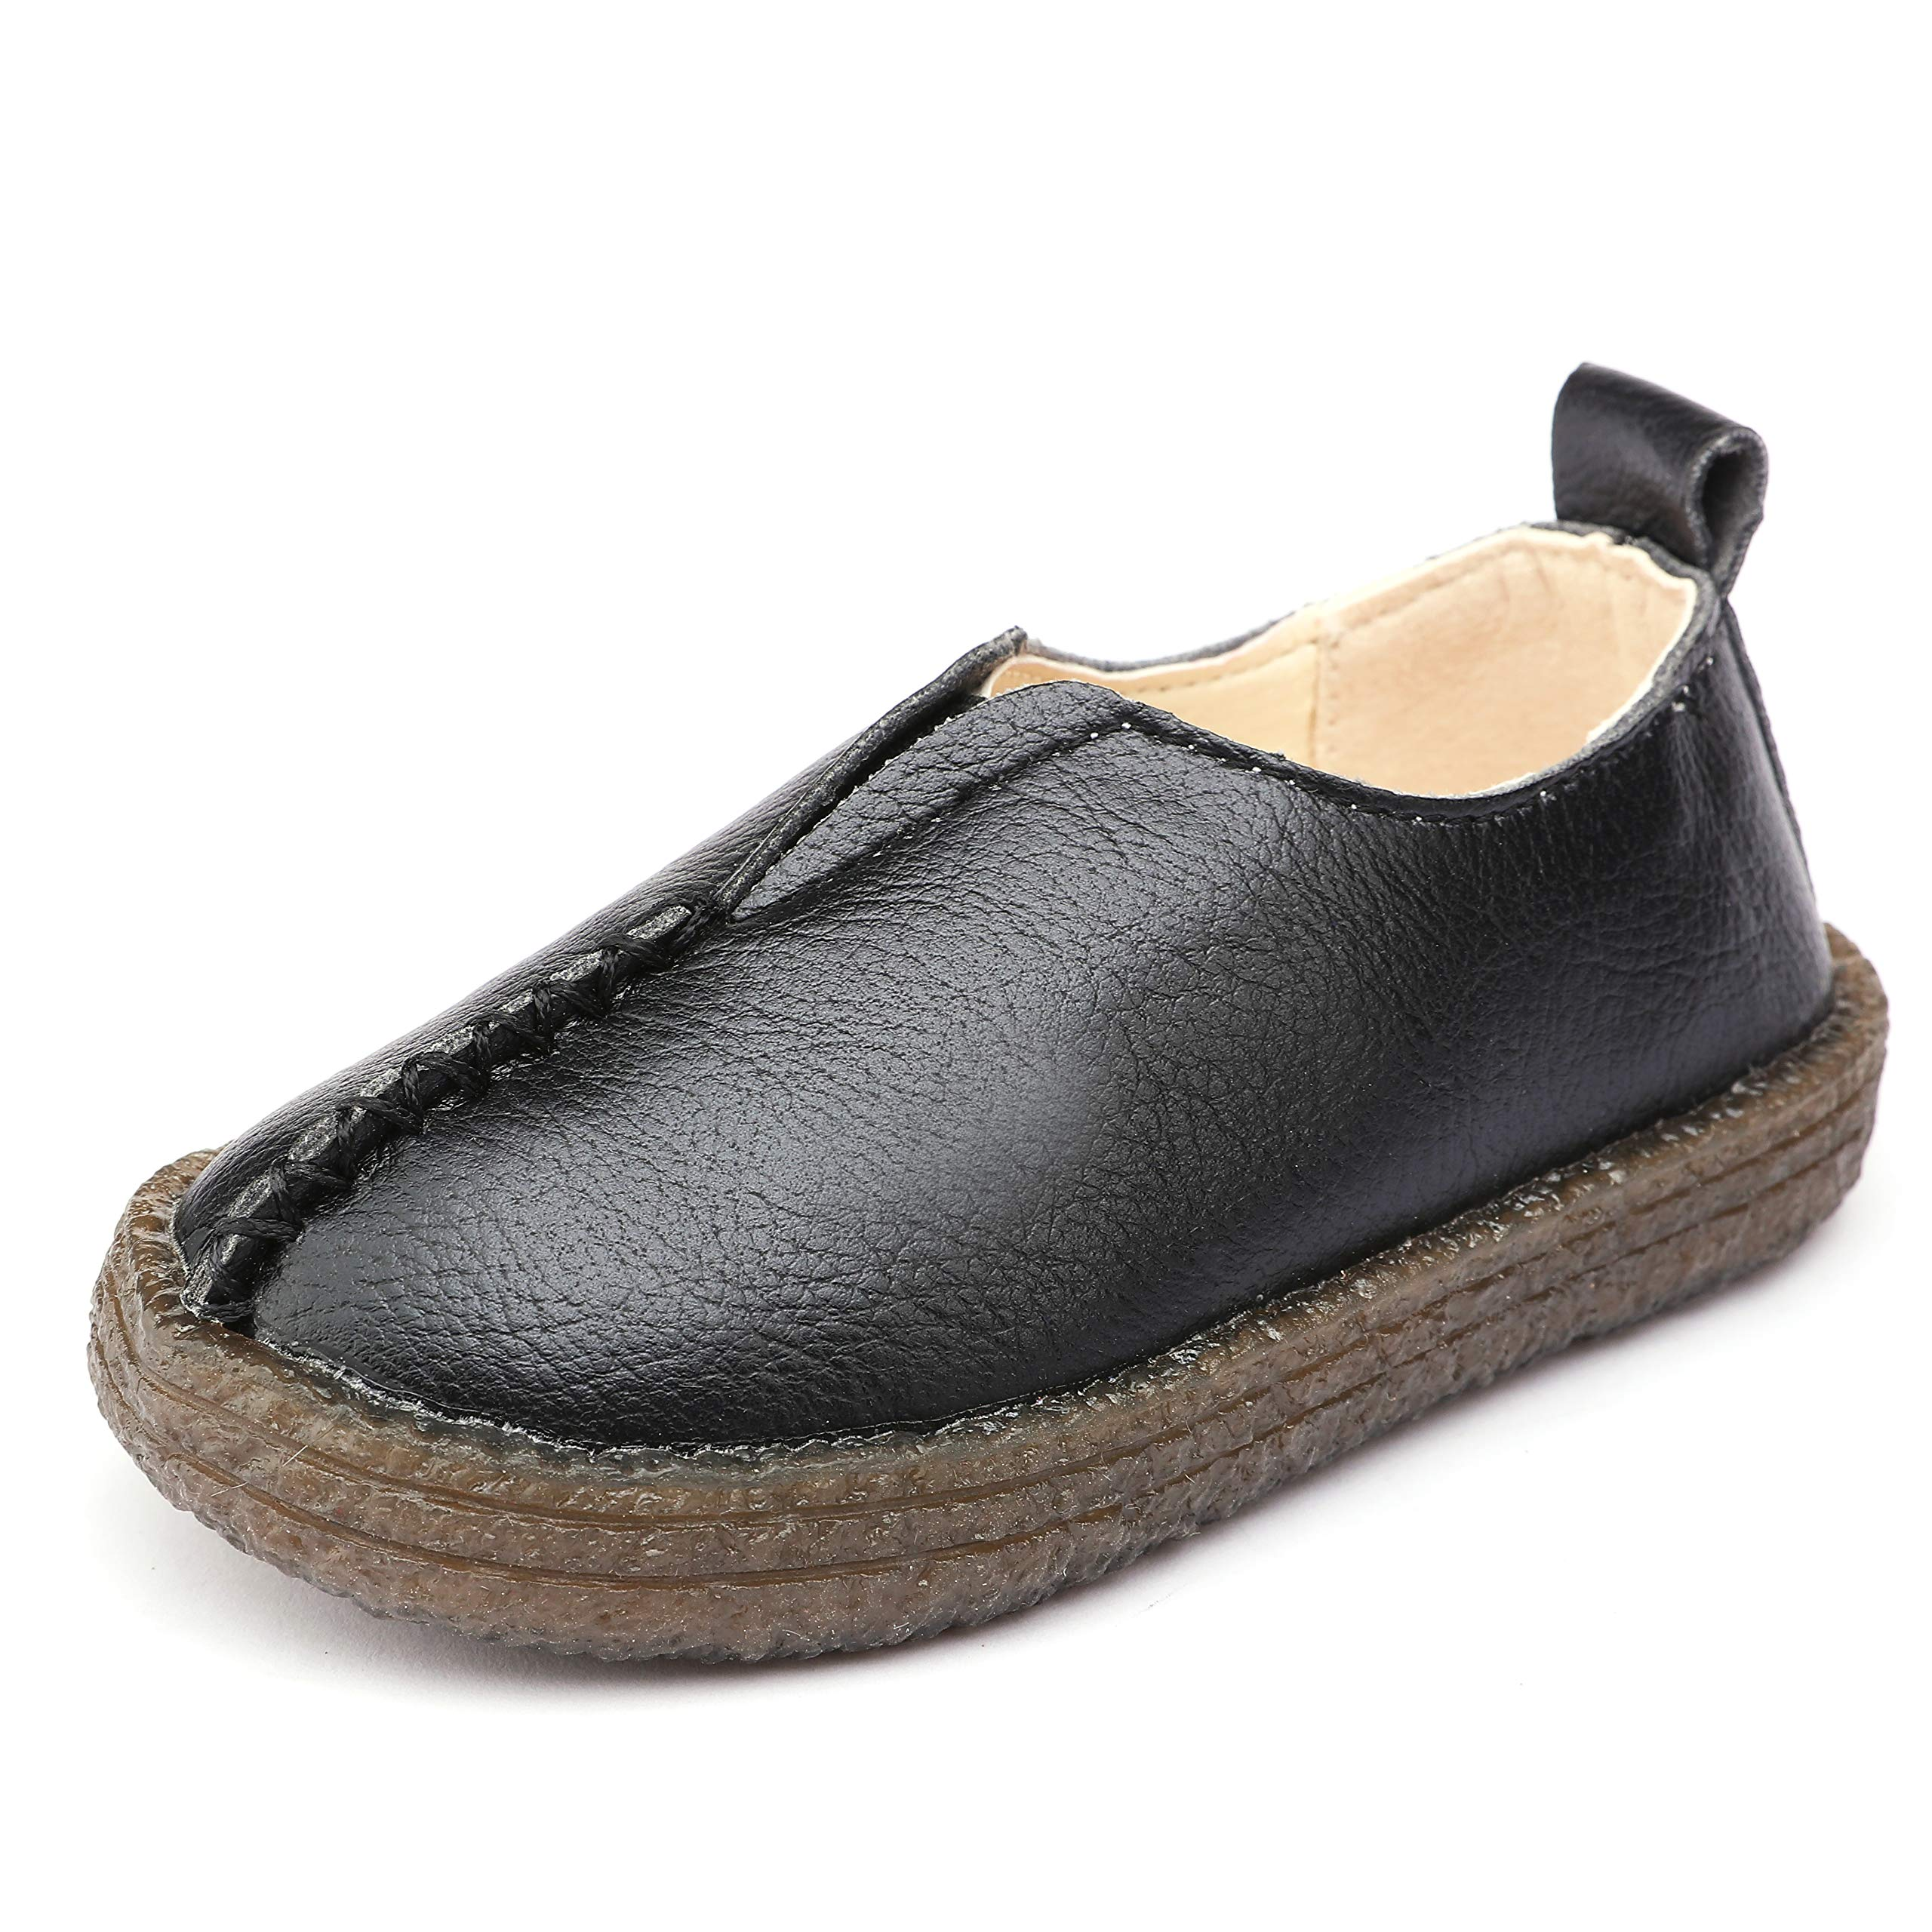 UBELLA Boys's Slip On Loafers Casual Boat Dress Shoes Flats (Toddler/Little Kid)